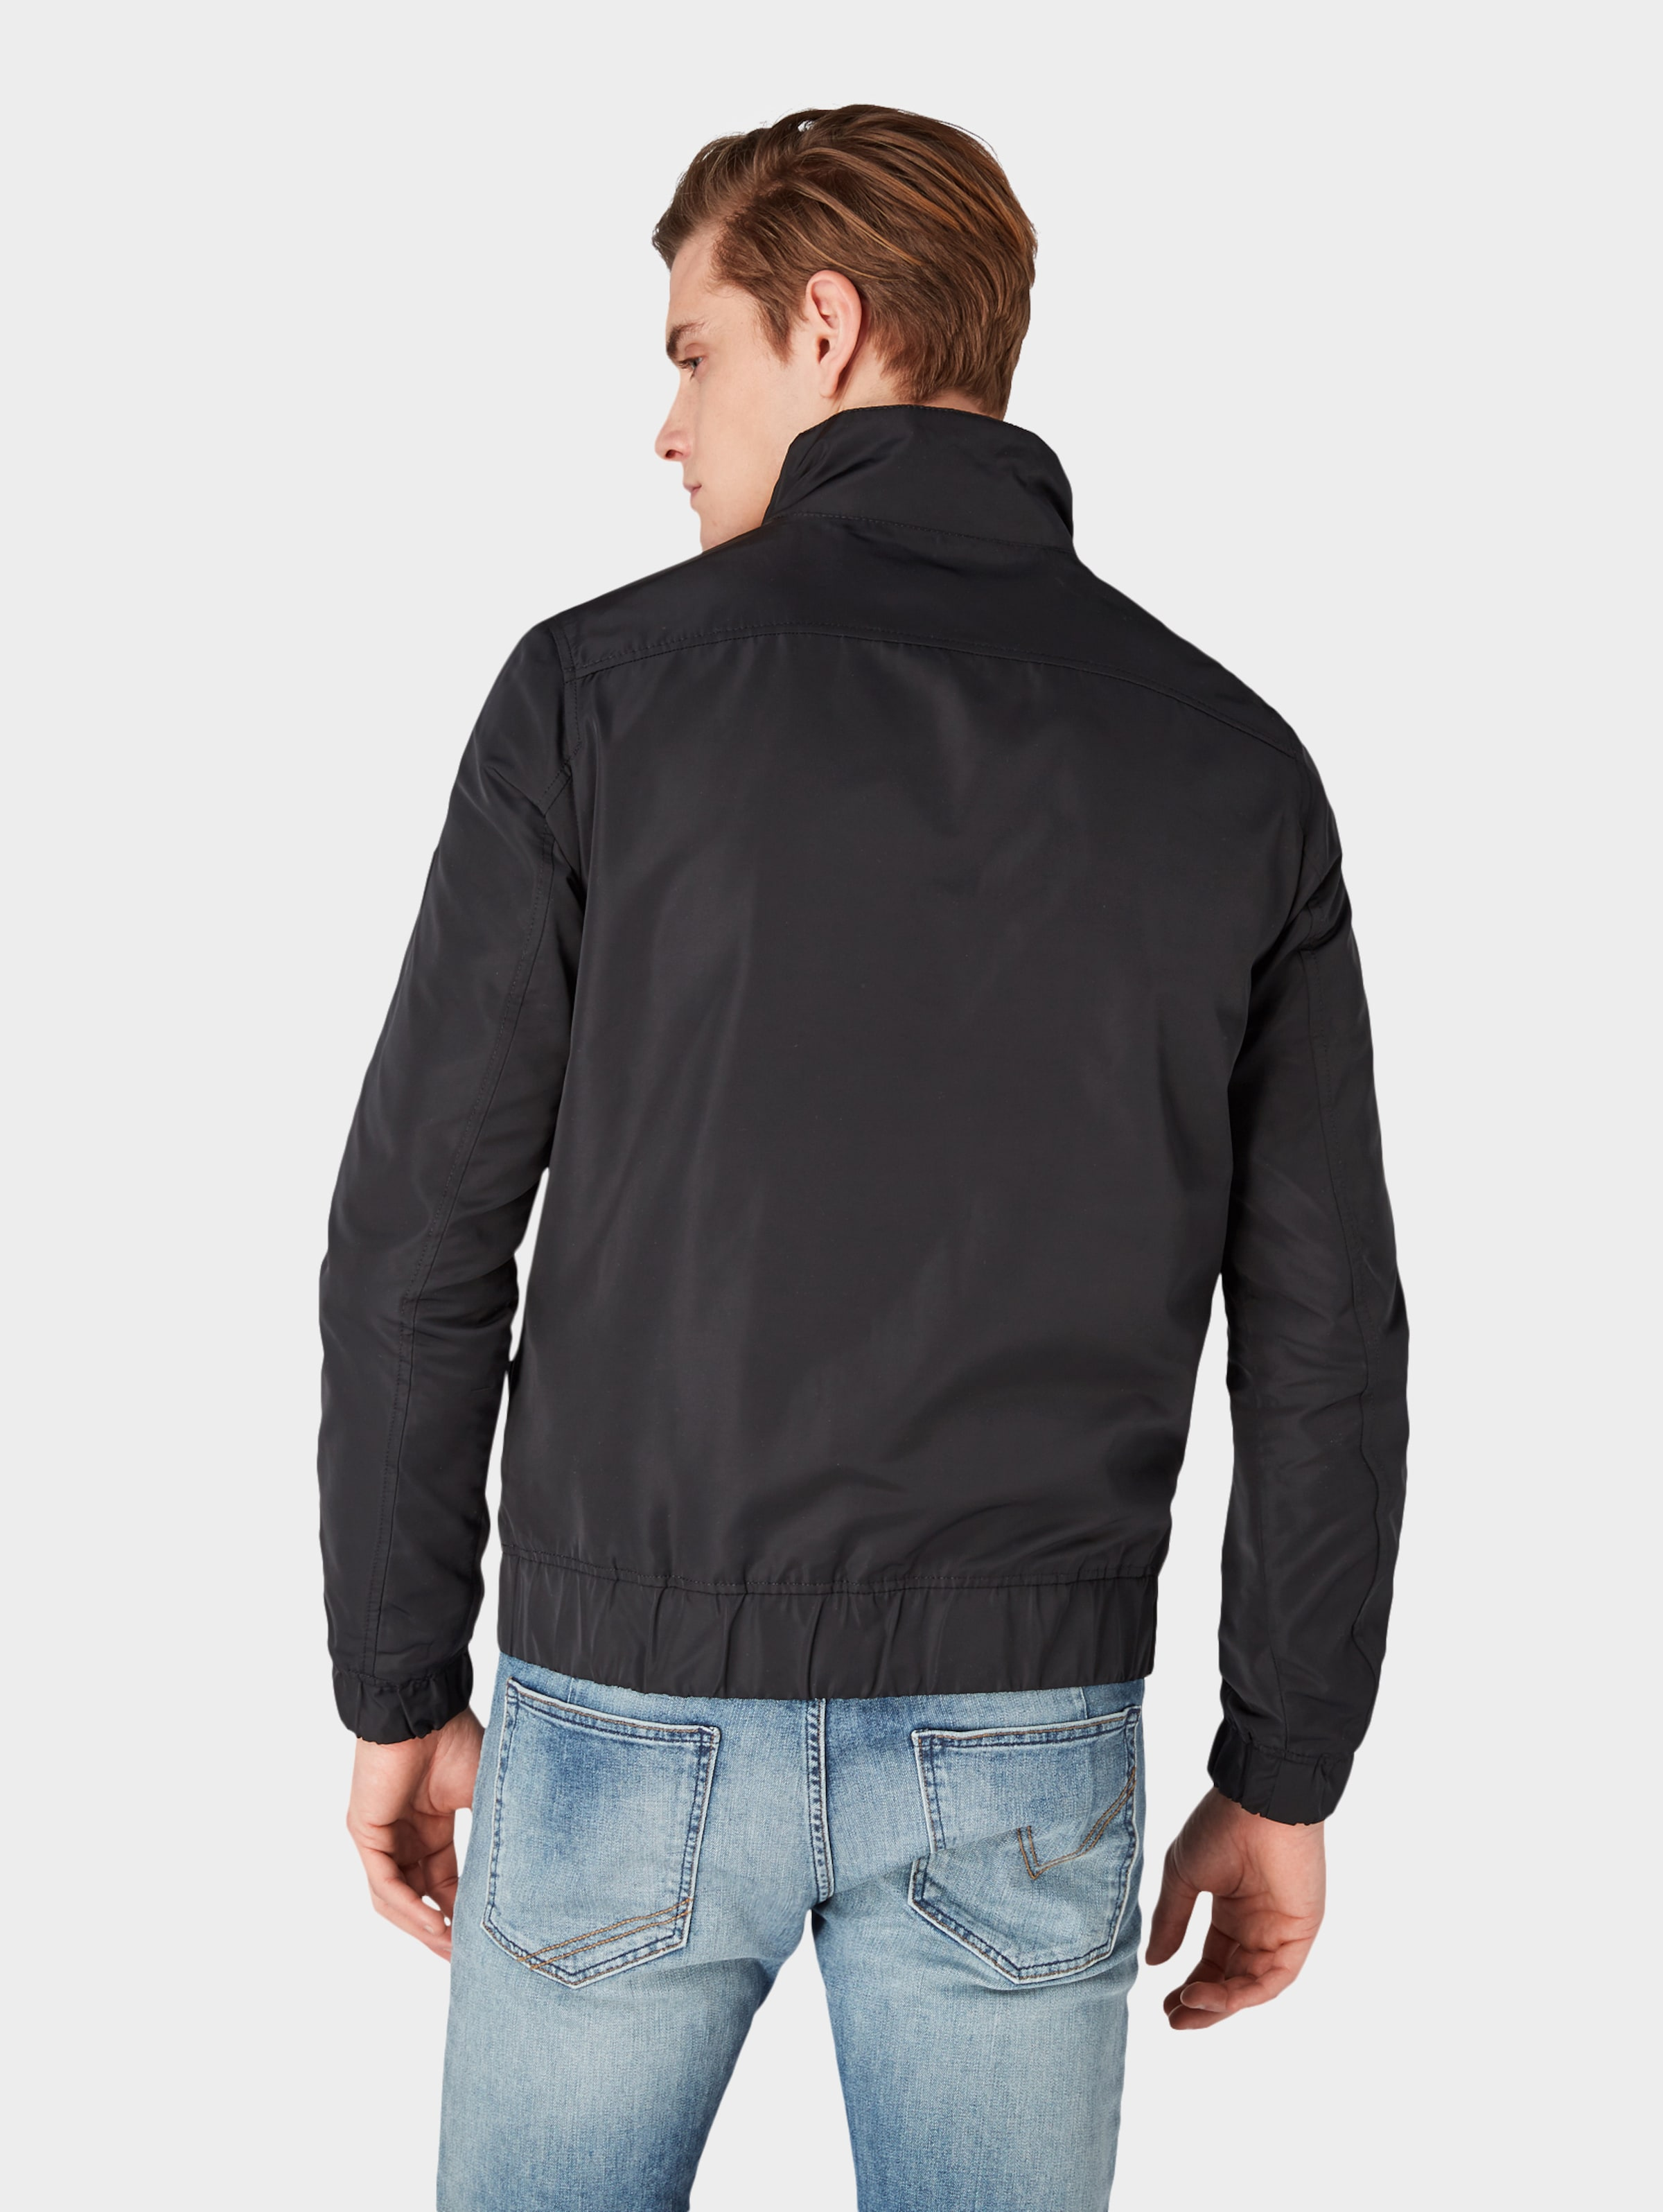 In Tom Denim Jacke Tailor Schwarz PN0kwnOX8